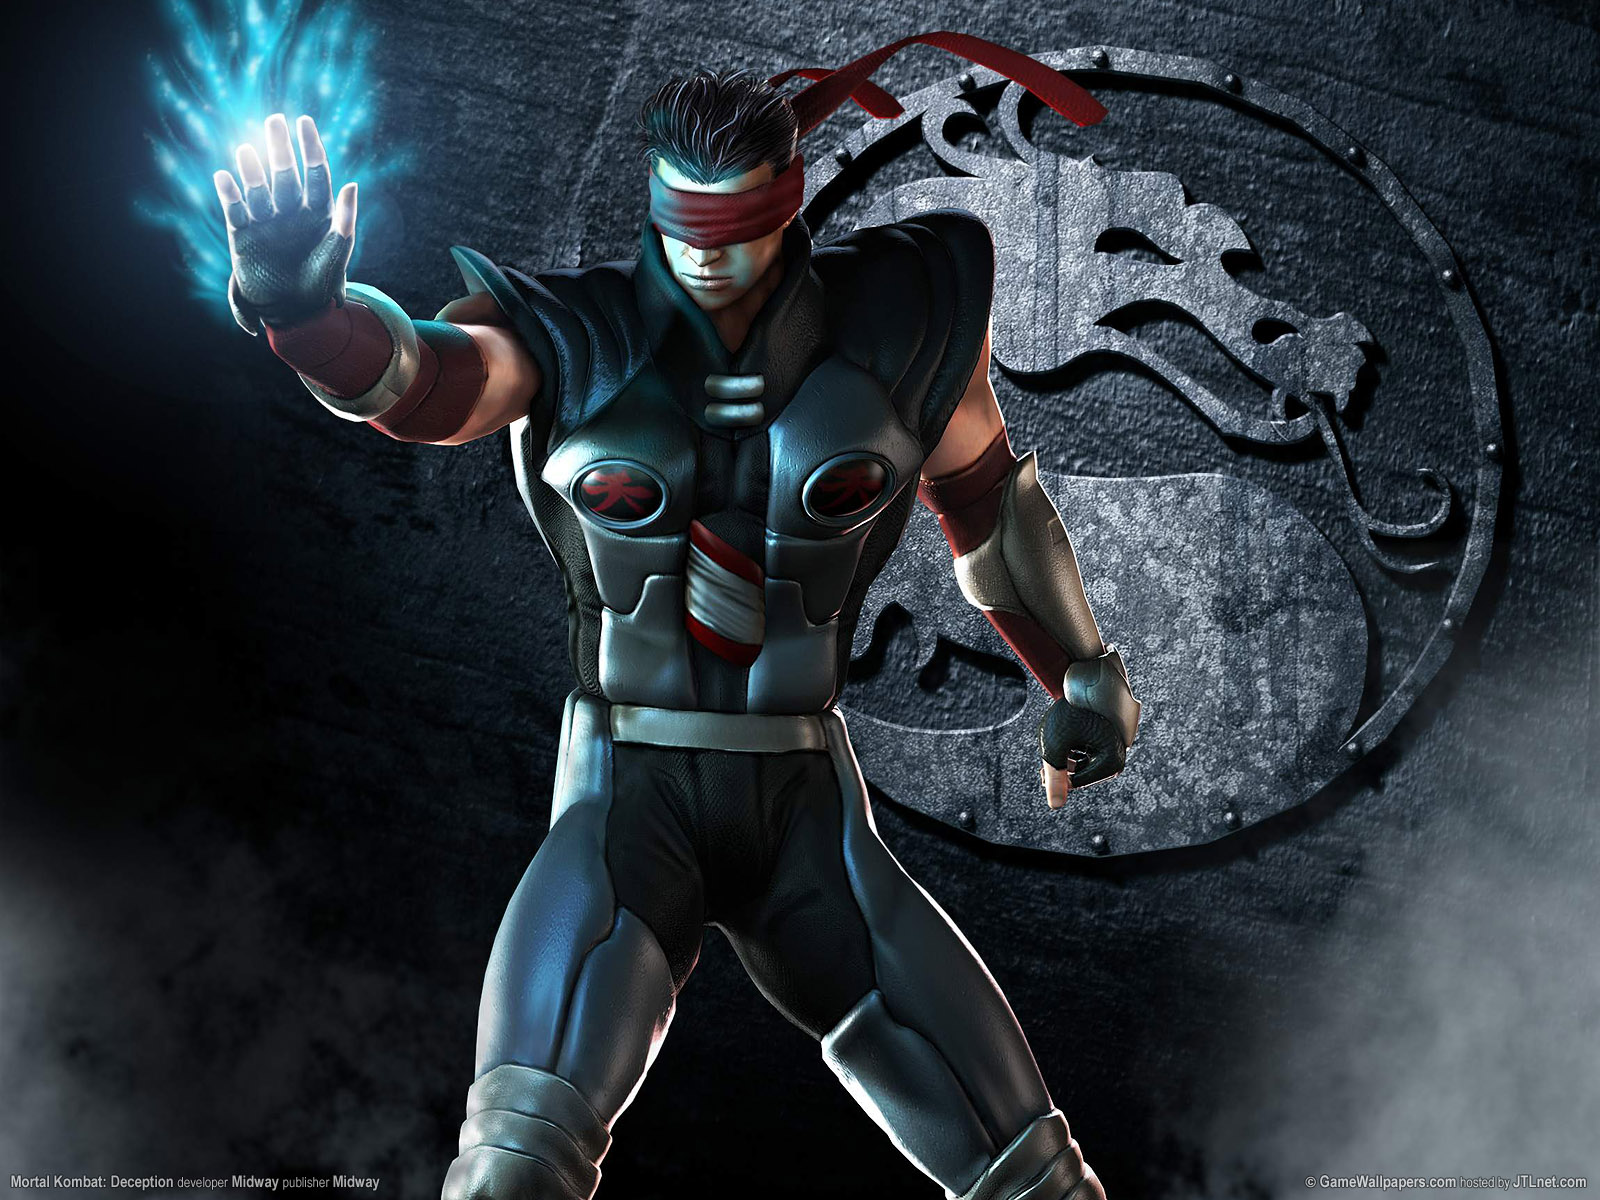 Mortal kombat HD & Widescreen Wallpaper 0.187943843720025